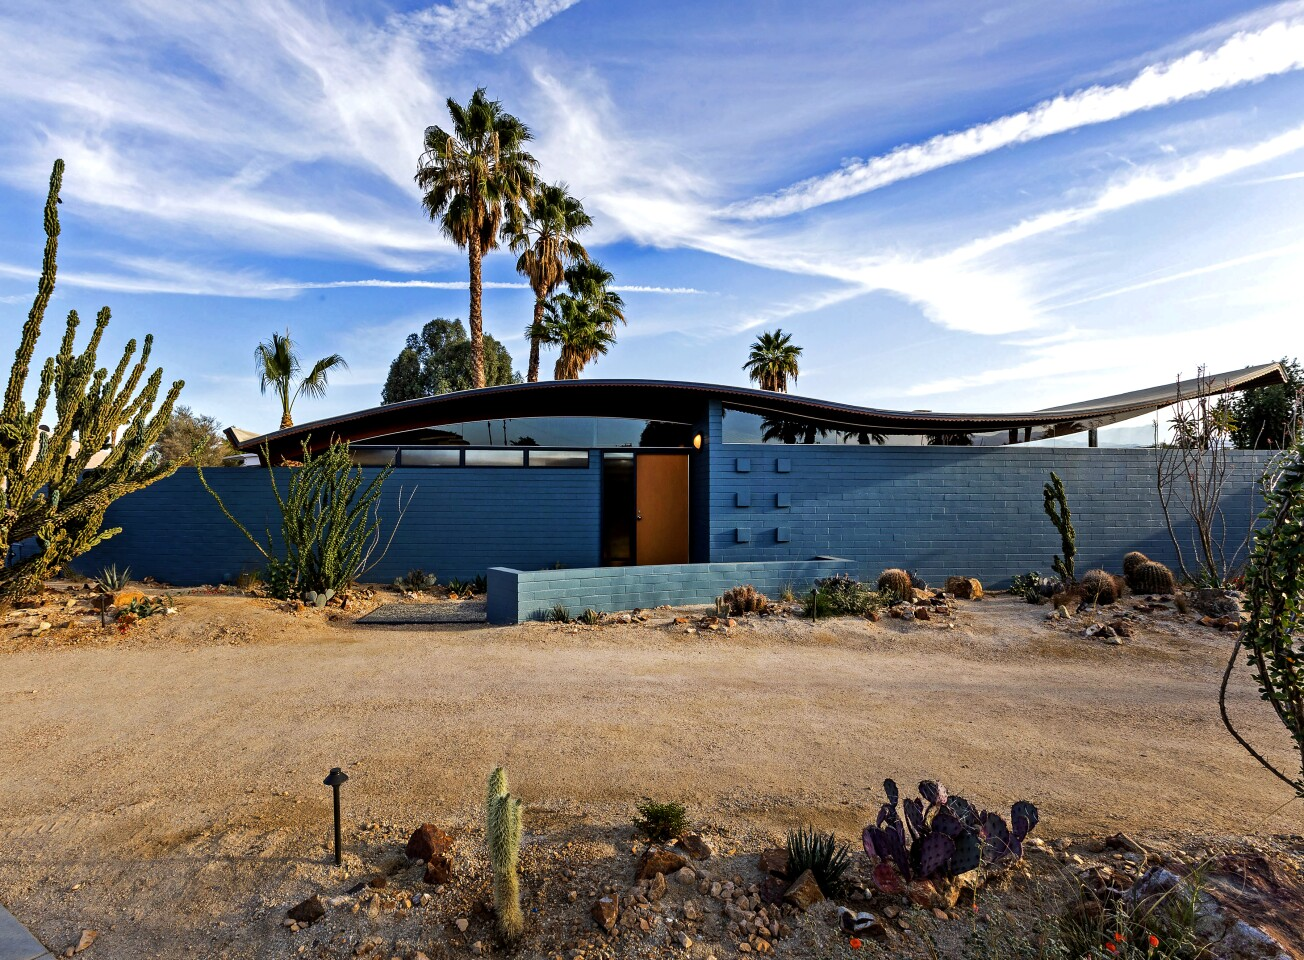 Recently restored, the 1950s gem boasts an undulating roof that resembles a wave.